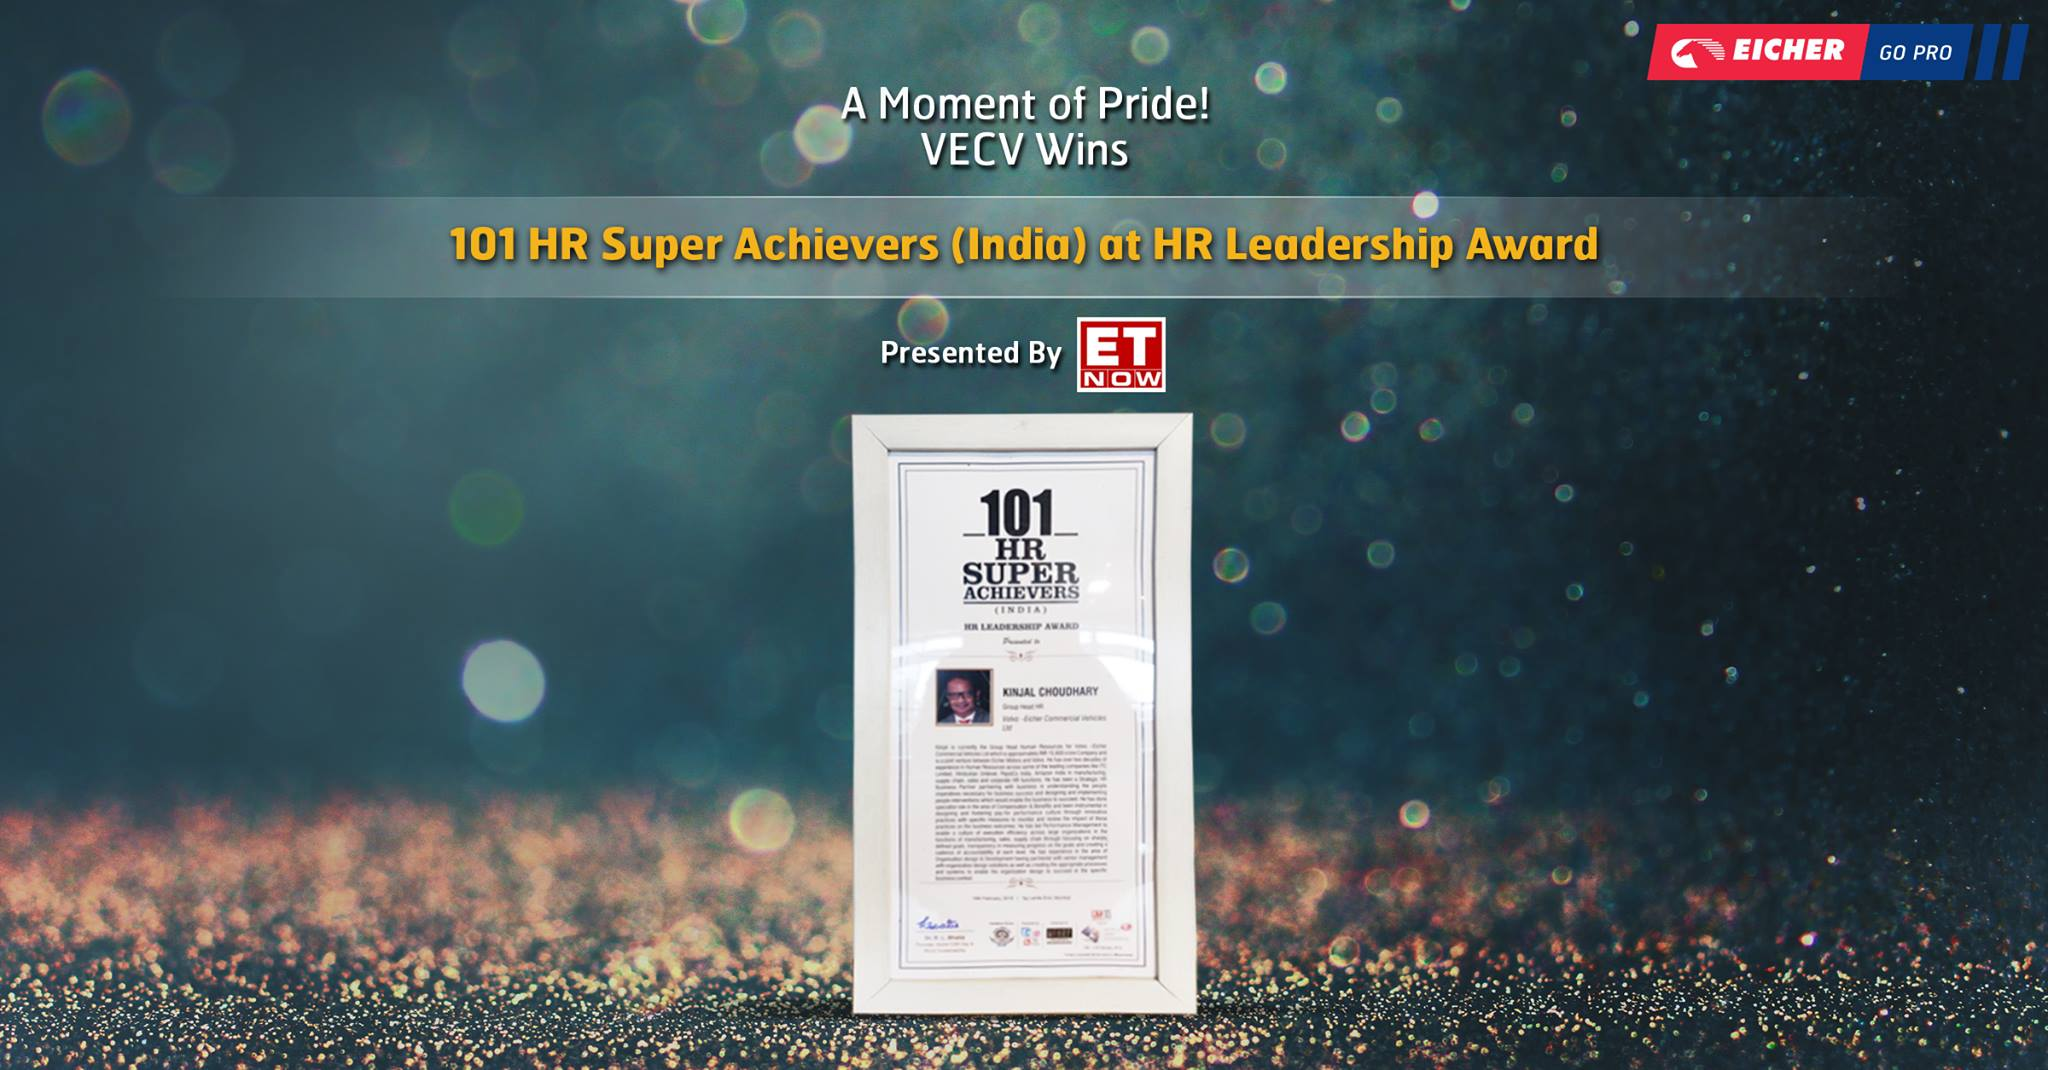 101 HR Super Achievers (India) at HR Leadership Awards